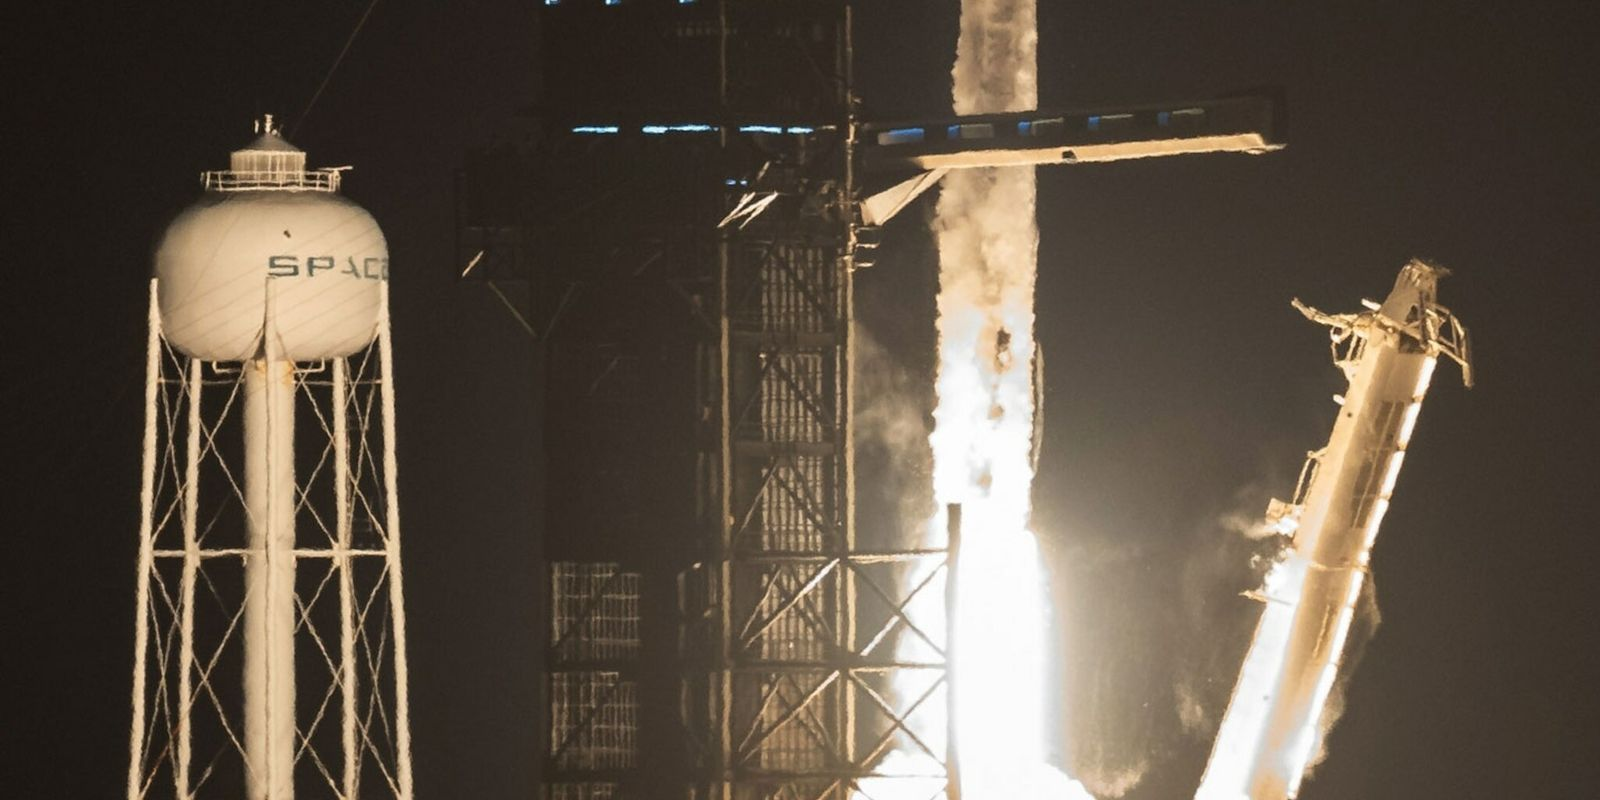 SpaceX launches first astronauts on a reused rocket